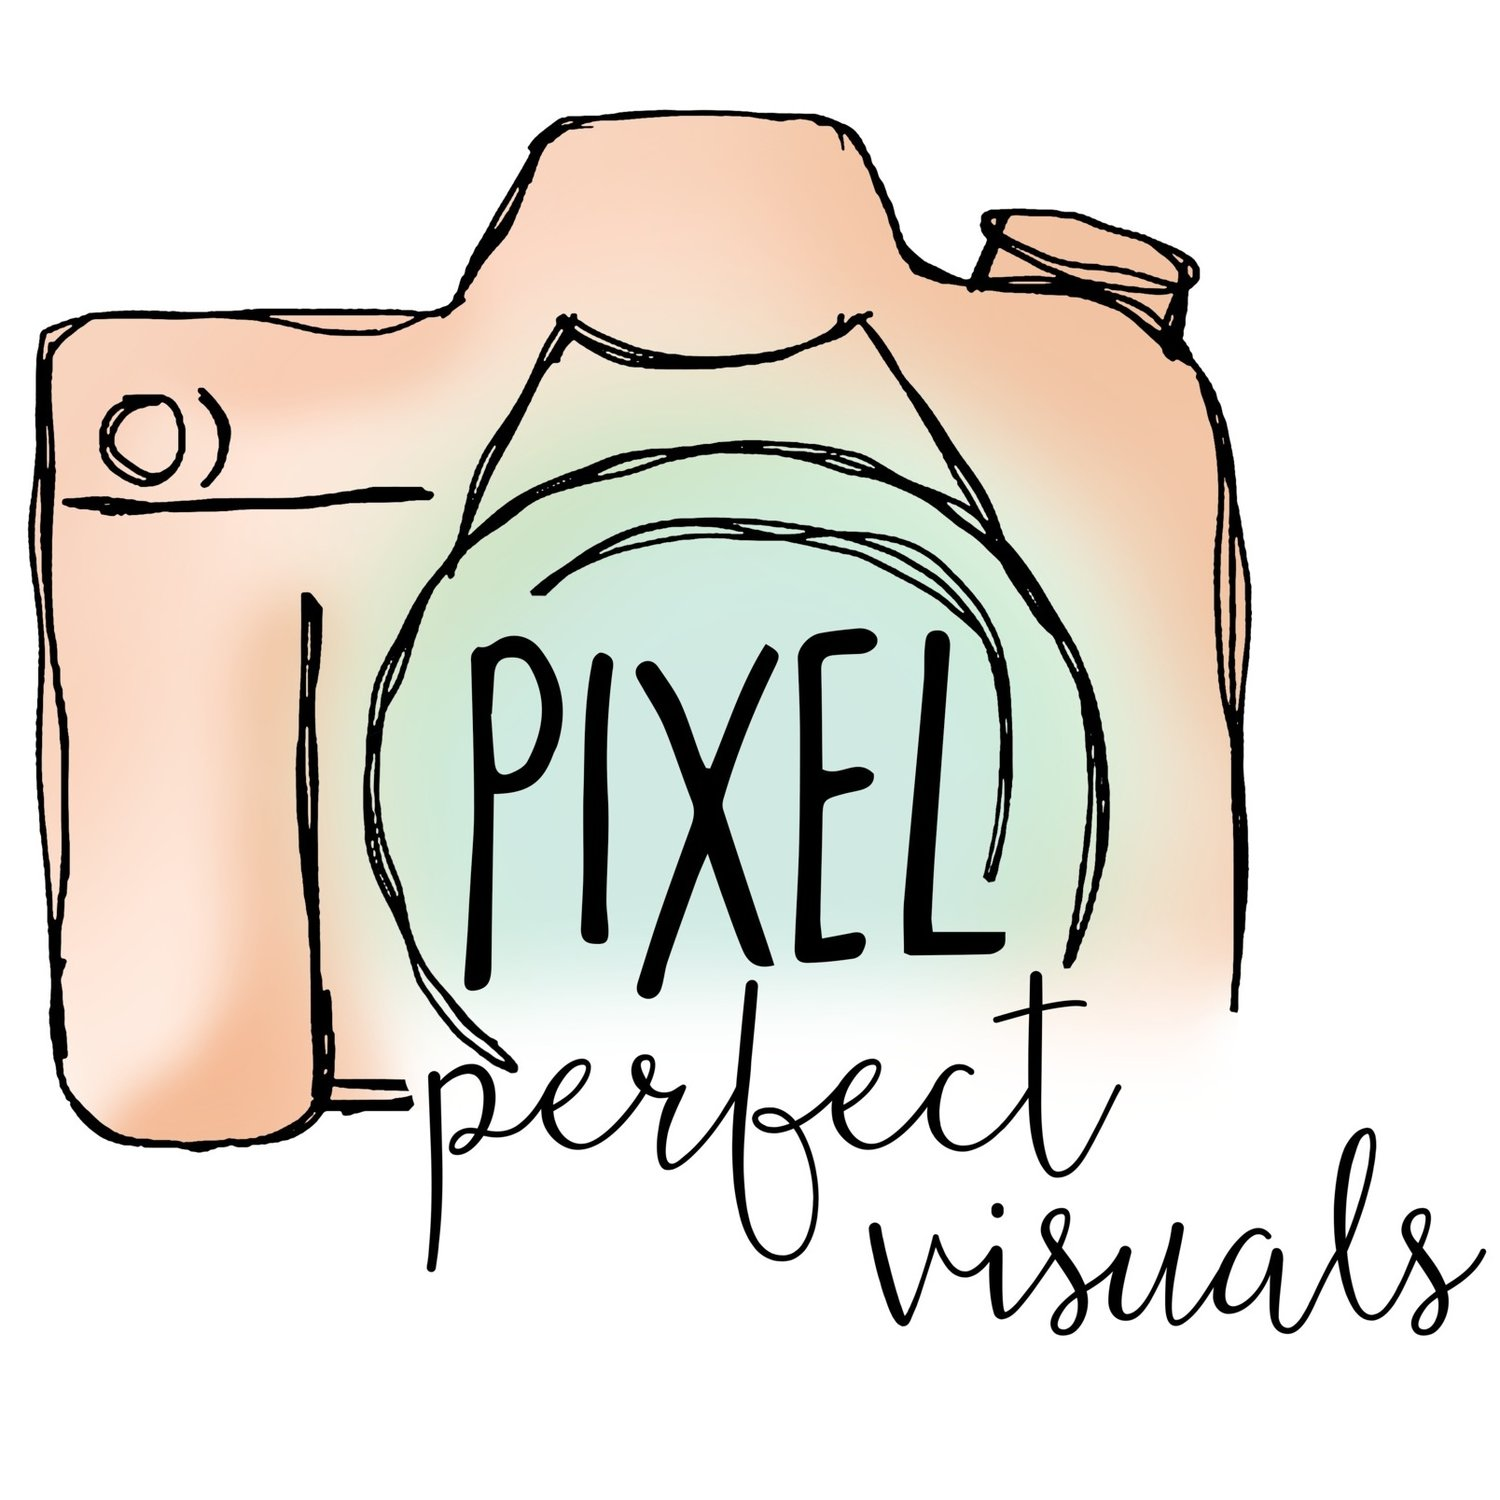 Pixel Perfect Visuals